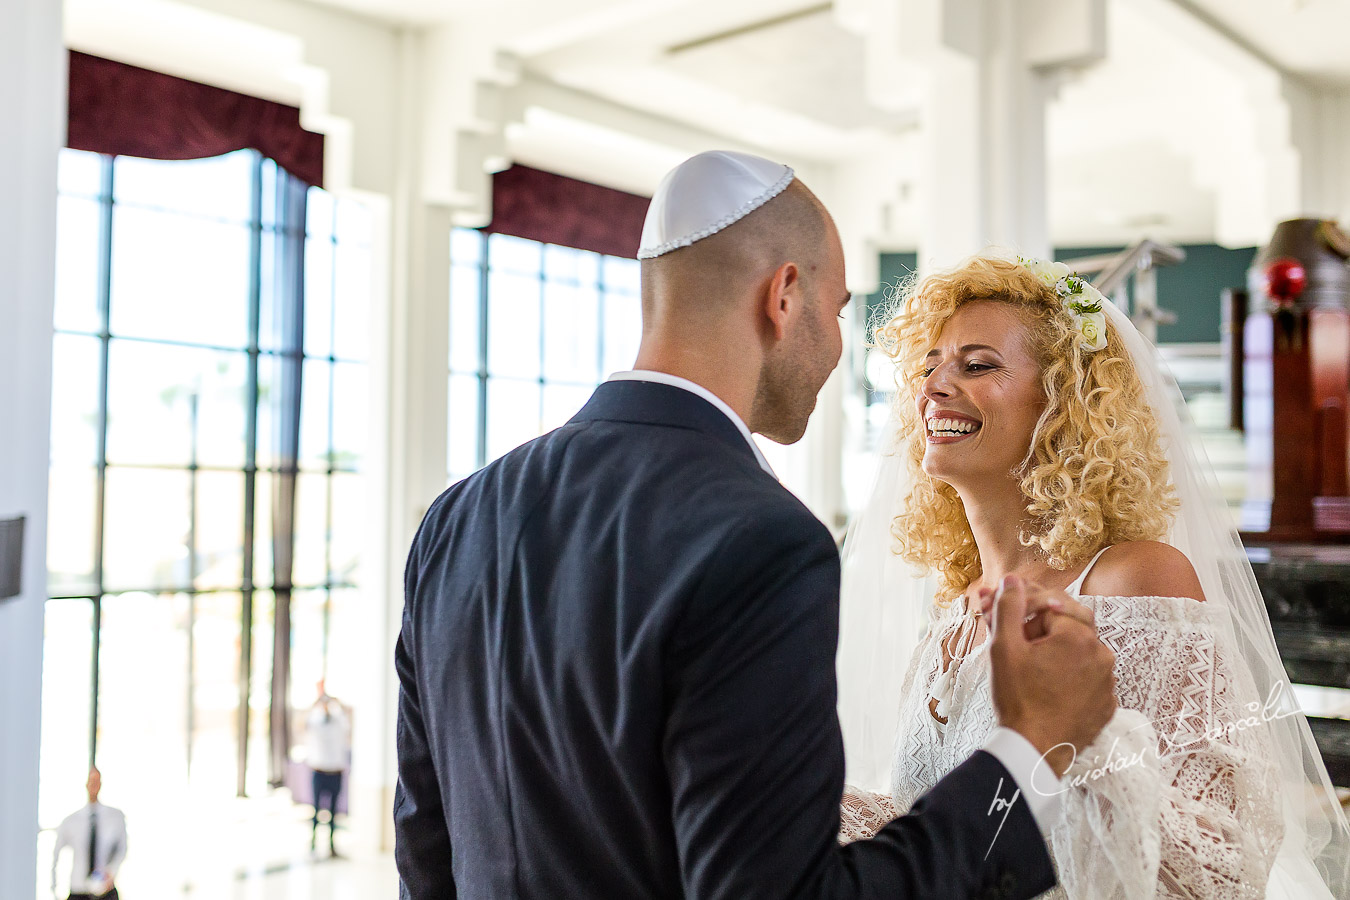 The groom meets his bride before their Jewish Wedding Ceremony in Cyprus.